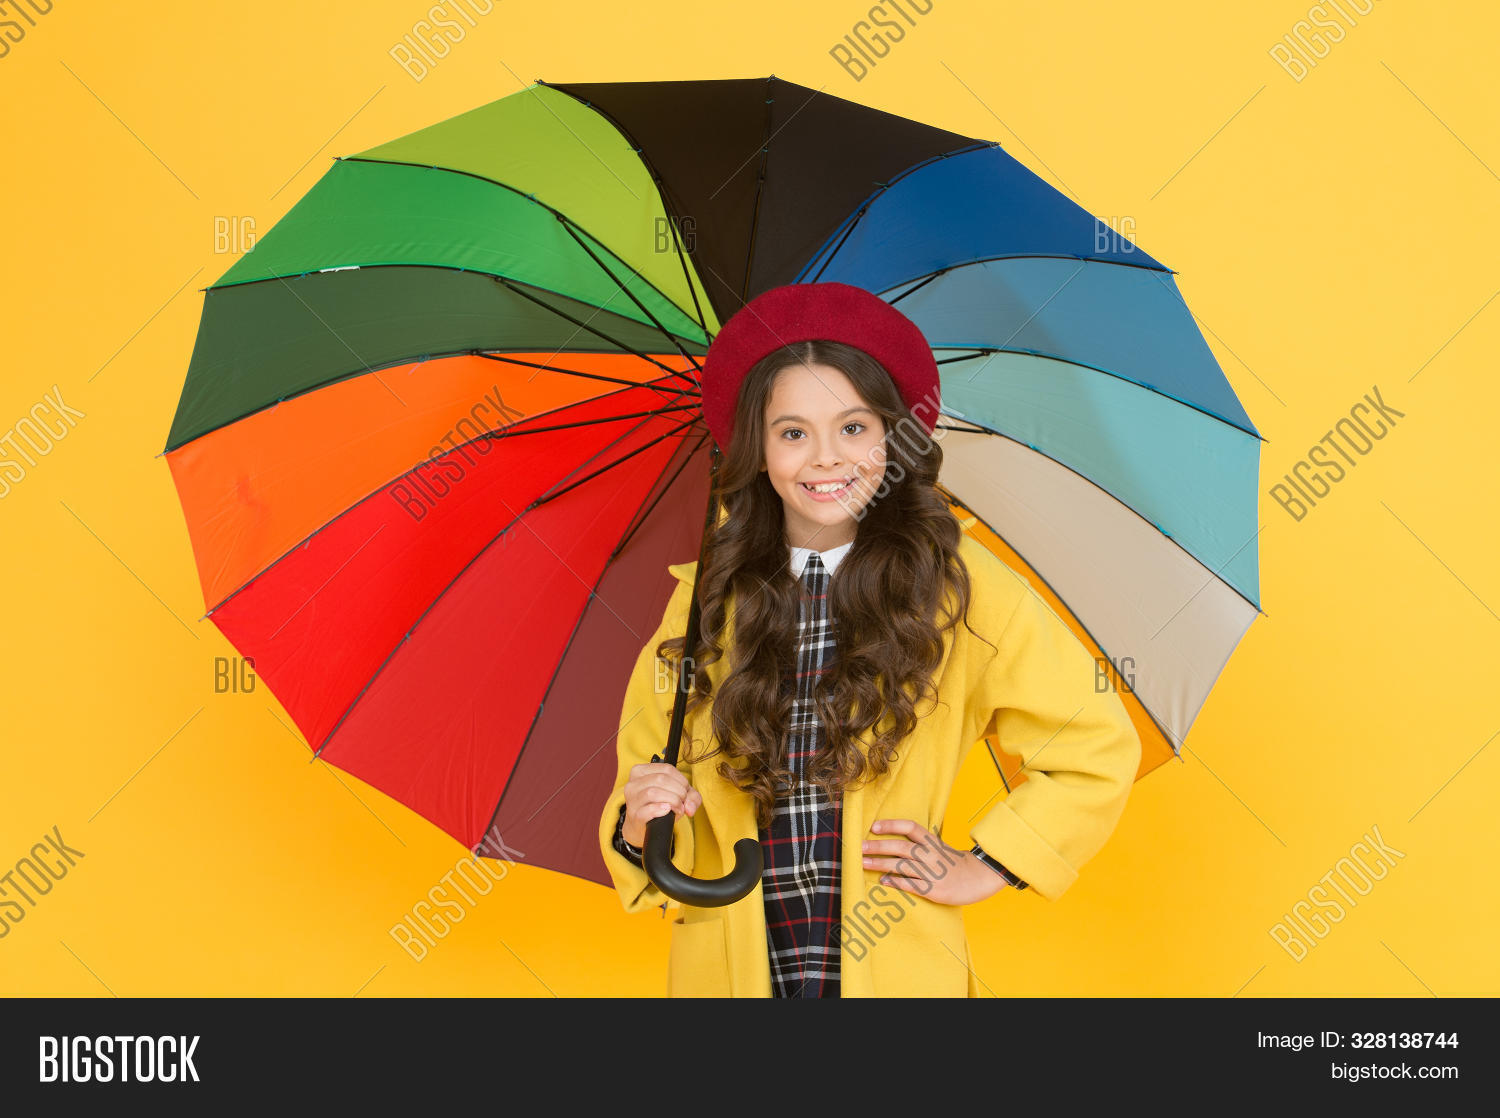 Waiting for it to rain. Small child hold open umbrella. Rain accessory. Little girl in raincoat with fashion accessory. Accessory for rainy autumn season. The perfect accessory to keep her protected.